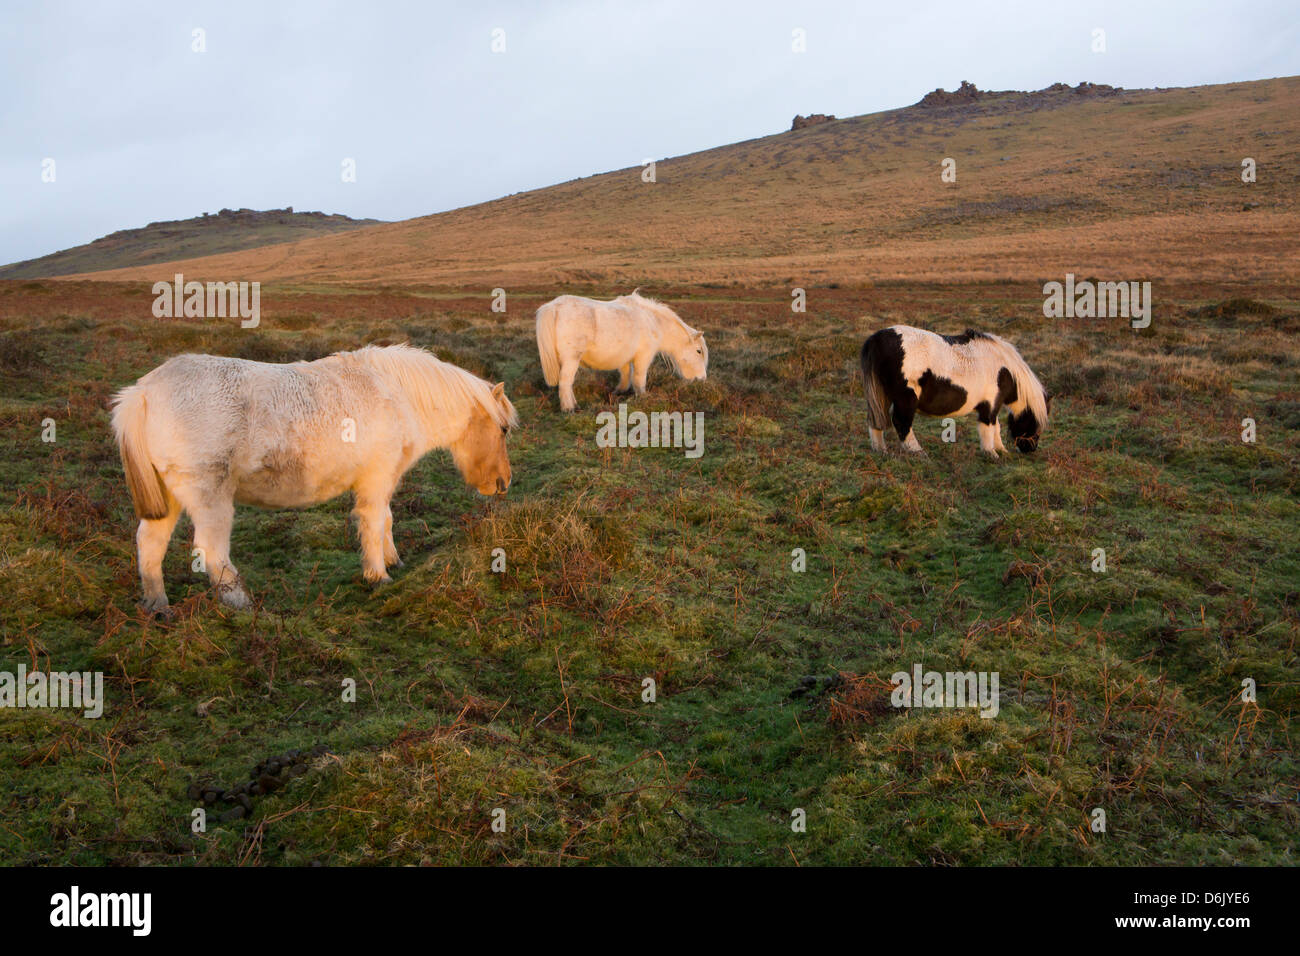 Ponies grazing, tor in background, Dartmoor National Park, Devon, England, United Kingdom - Stock Image